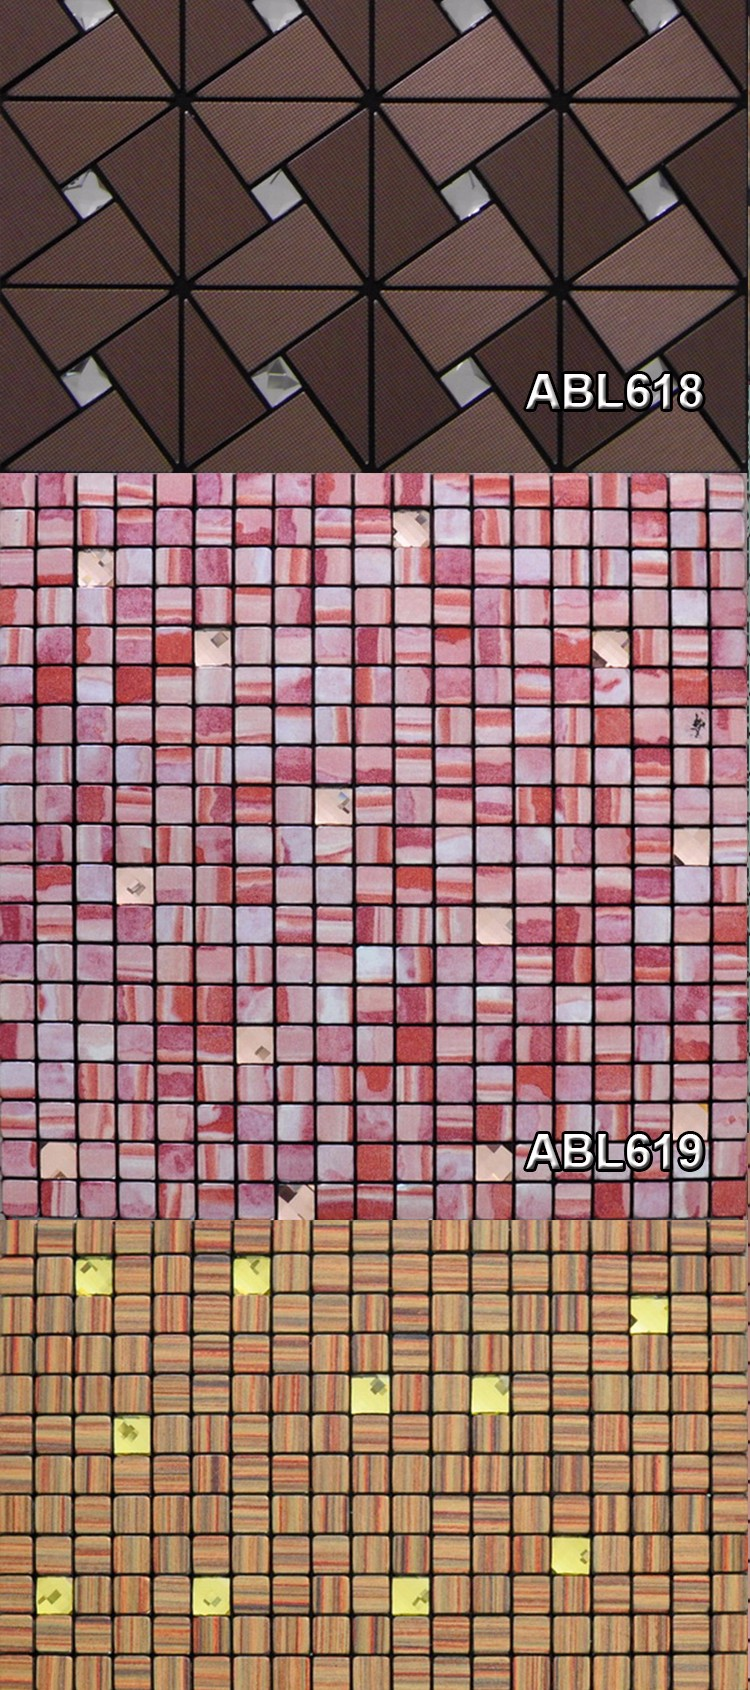 Modern kitchen building materials Set drill metal mosaic tile bathroom design home decoration mosaics tile china supplier ABL06